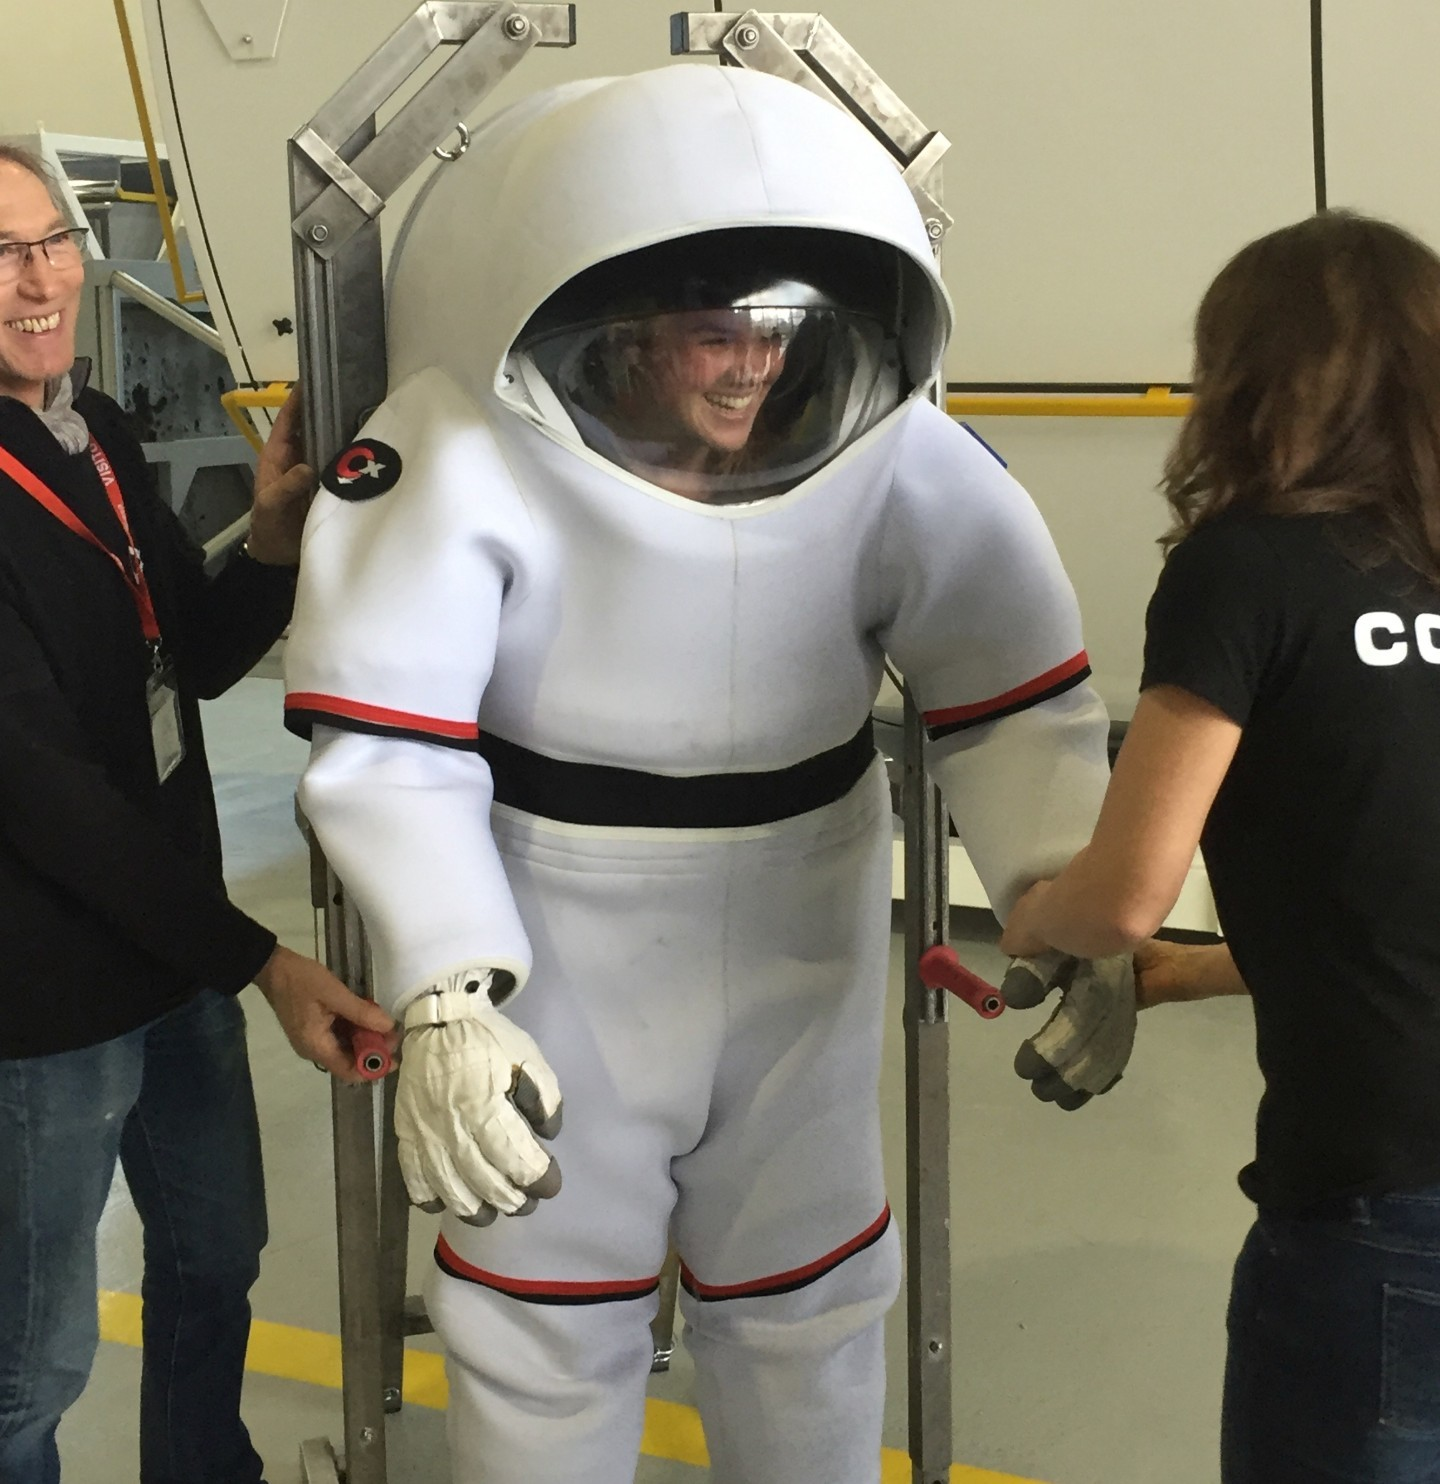 Katie Harris is outfitted with a diving suit at the European Astronaut Centre during Space Medicine Week earlier this year. (Submitted)